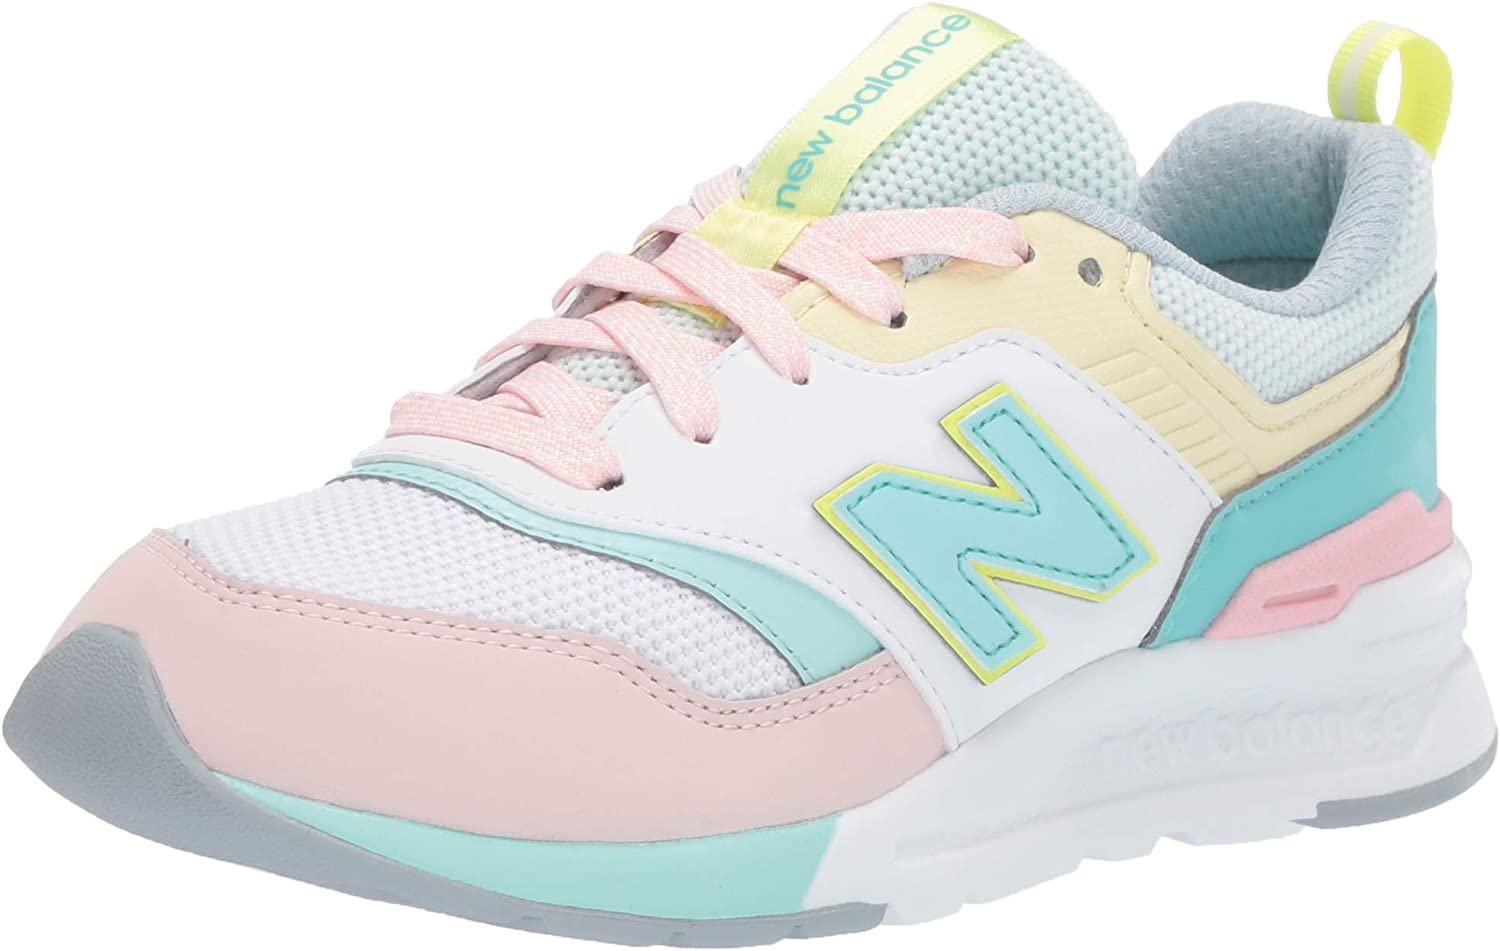 Little Kid New Balance Kids Girls 997Hv1